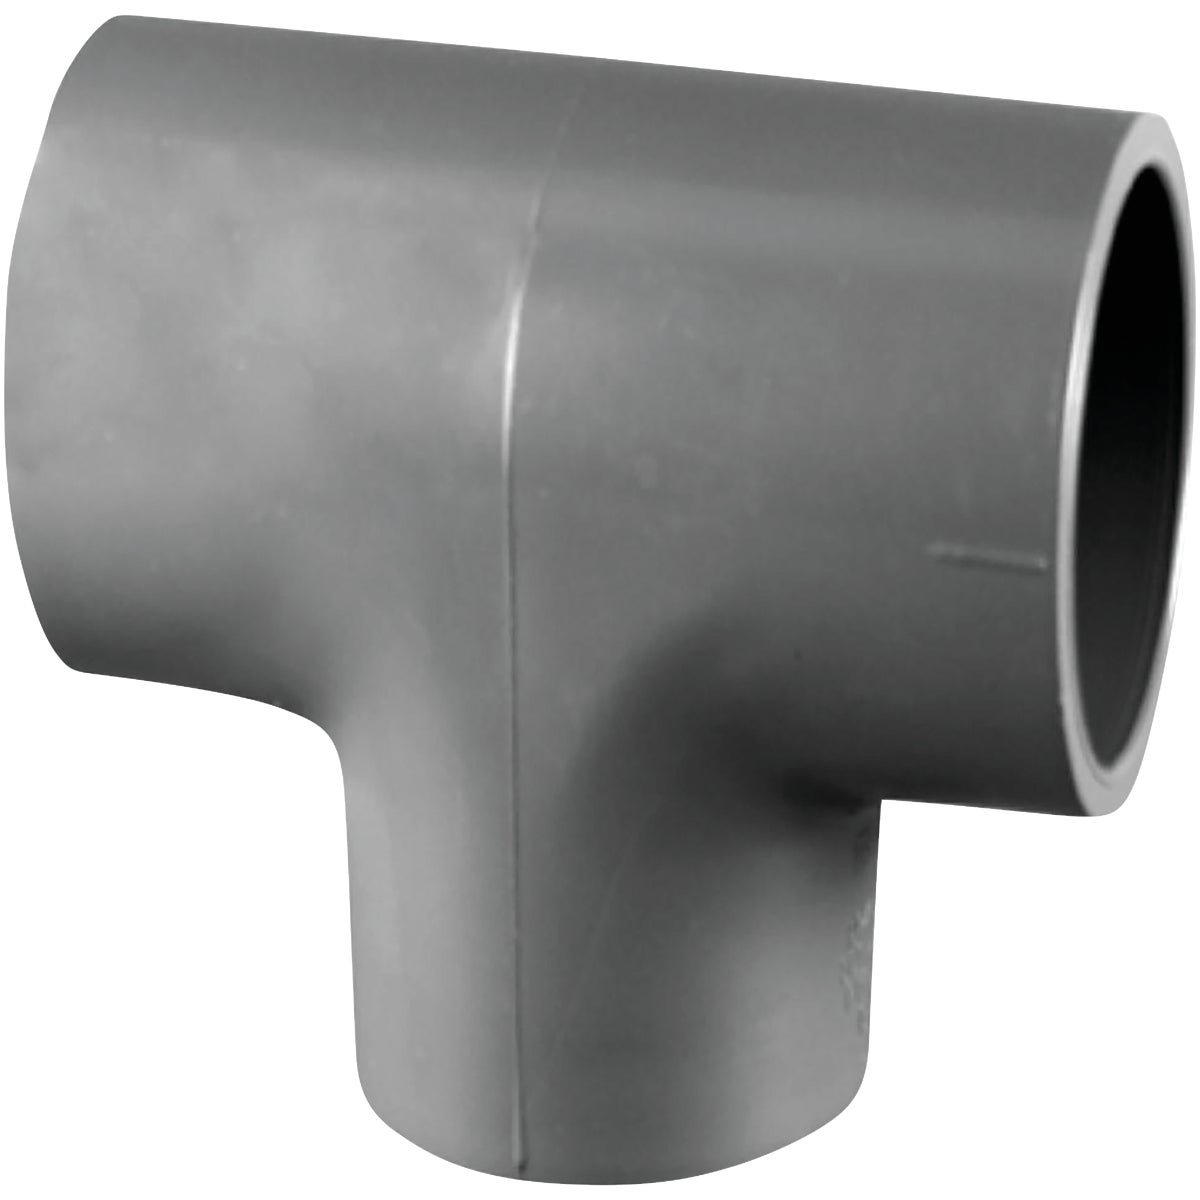 "1-1/2"" SCH80 PVC TEE - 314158 by Genova Inc"